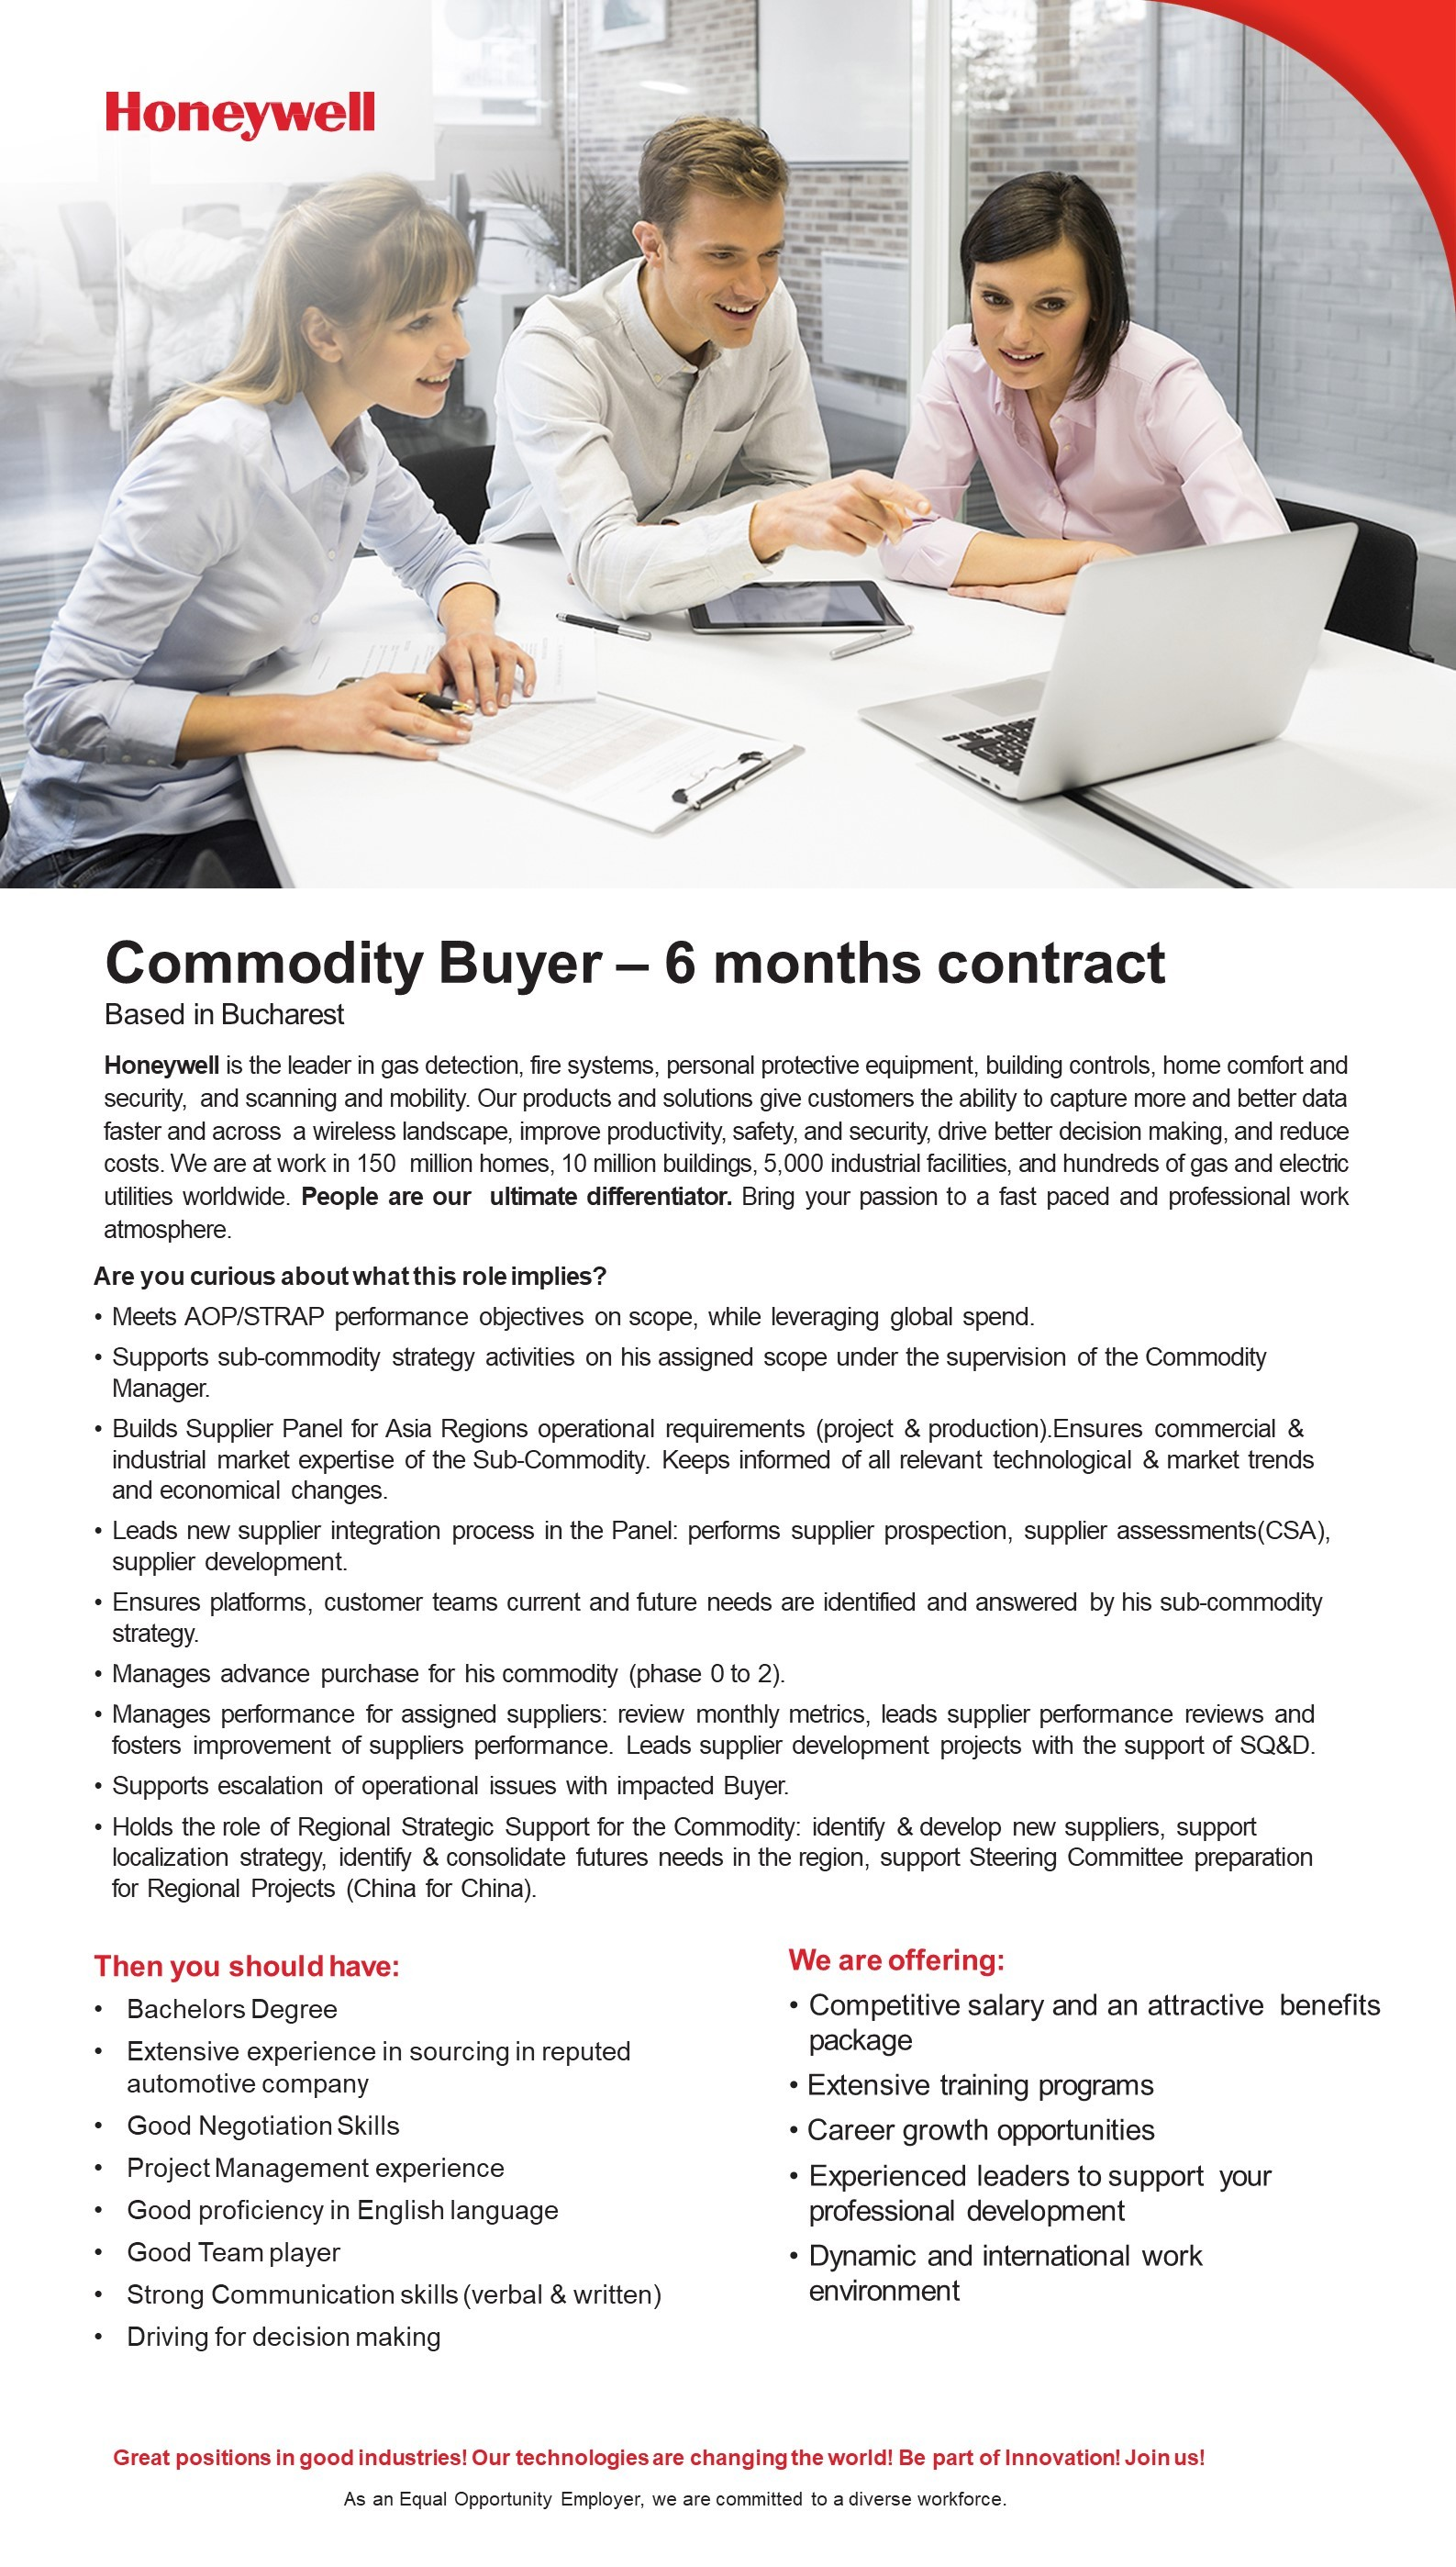 Commodity buyer 6 months contract